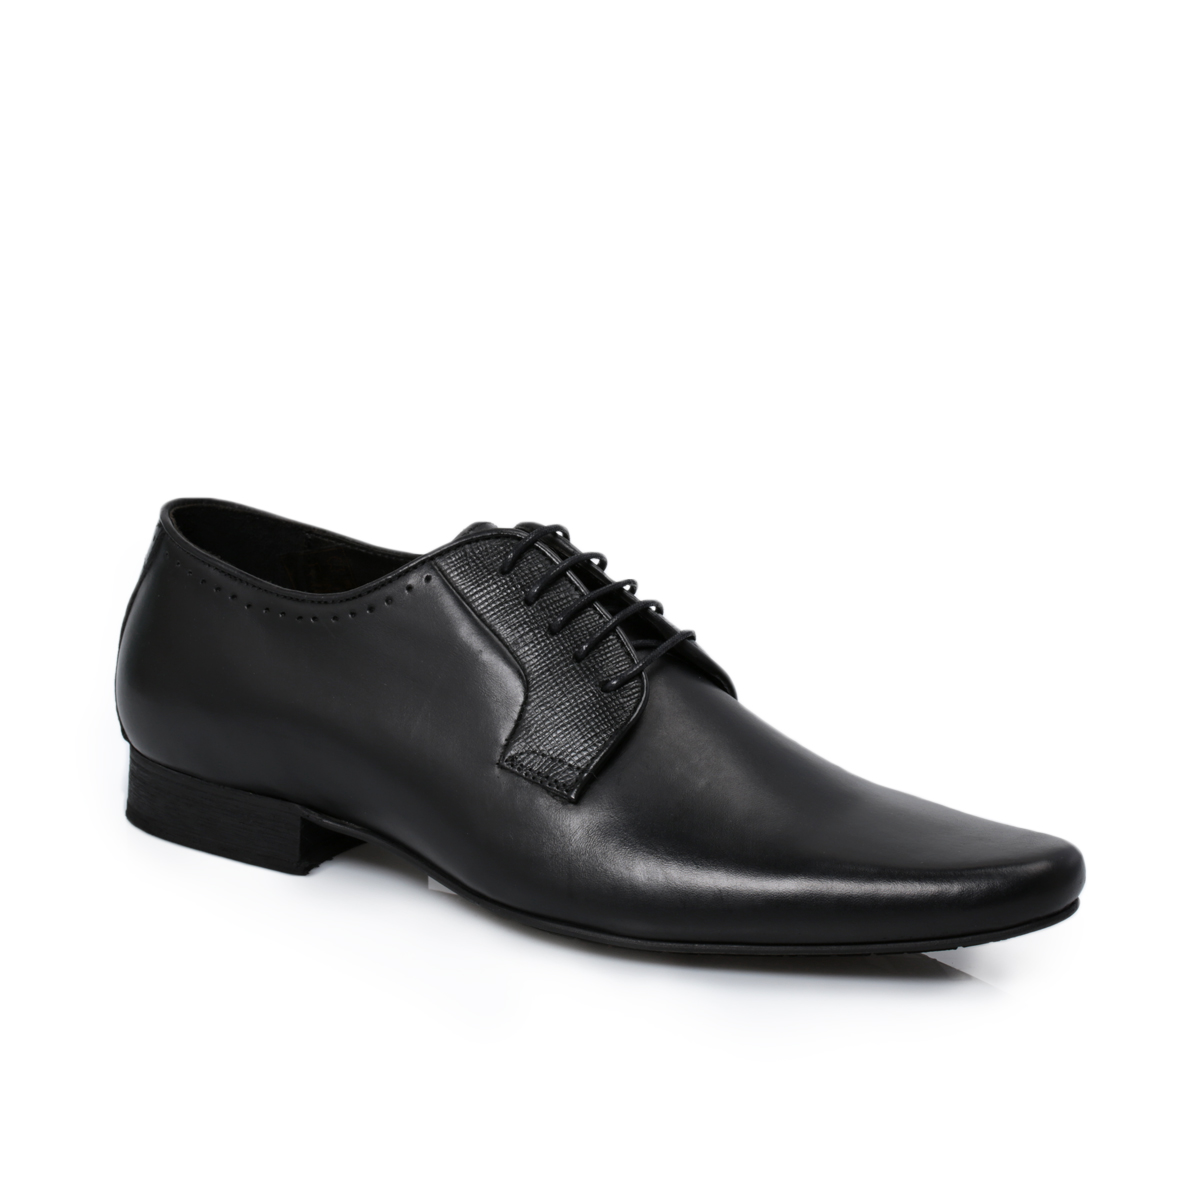 Free shipping and returns on Men's Black Dress Shoes at tennesseemyblogw0.cf